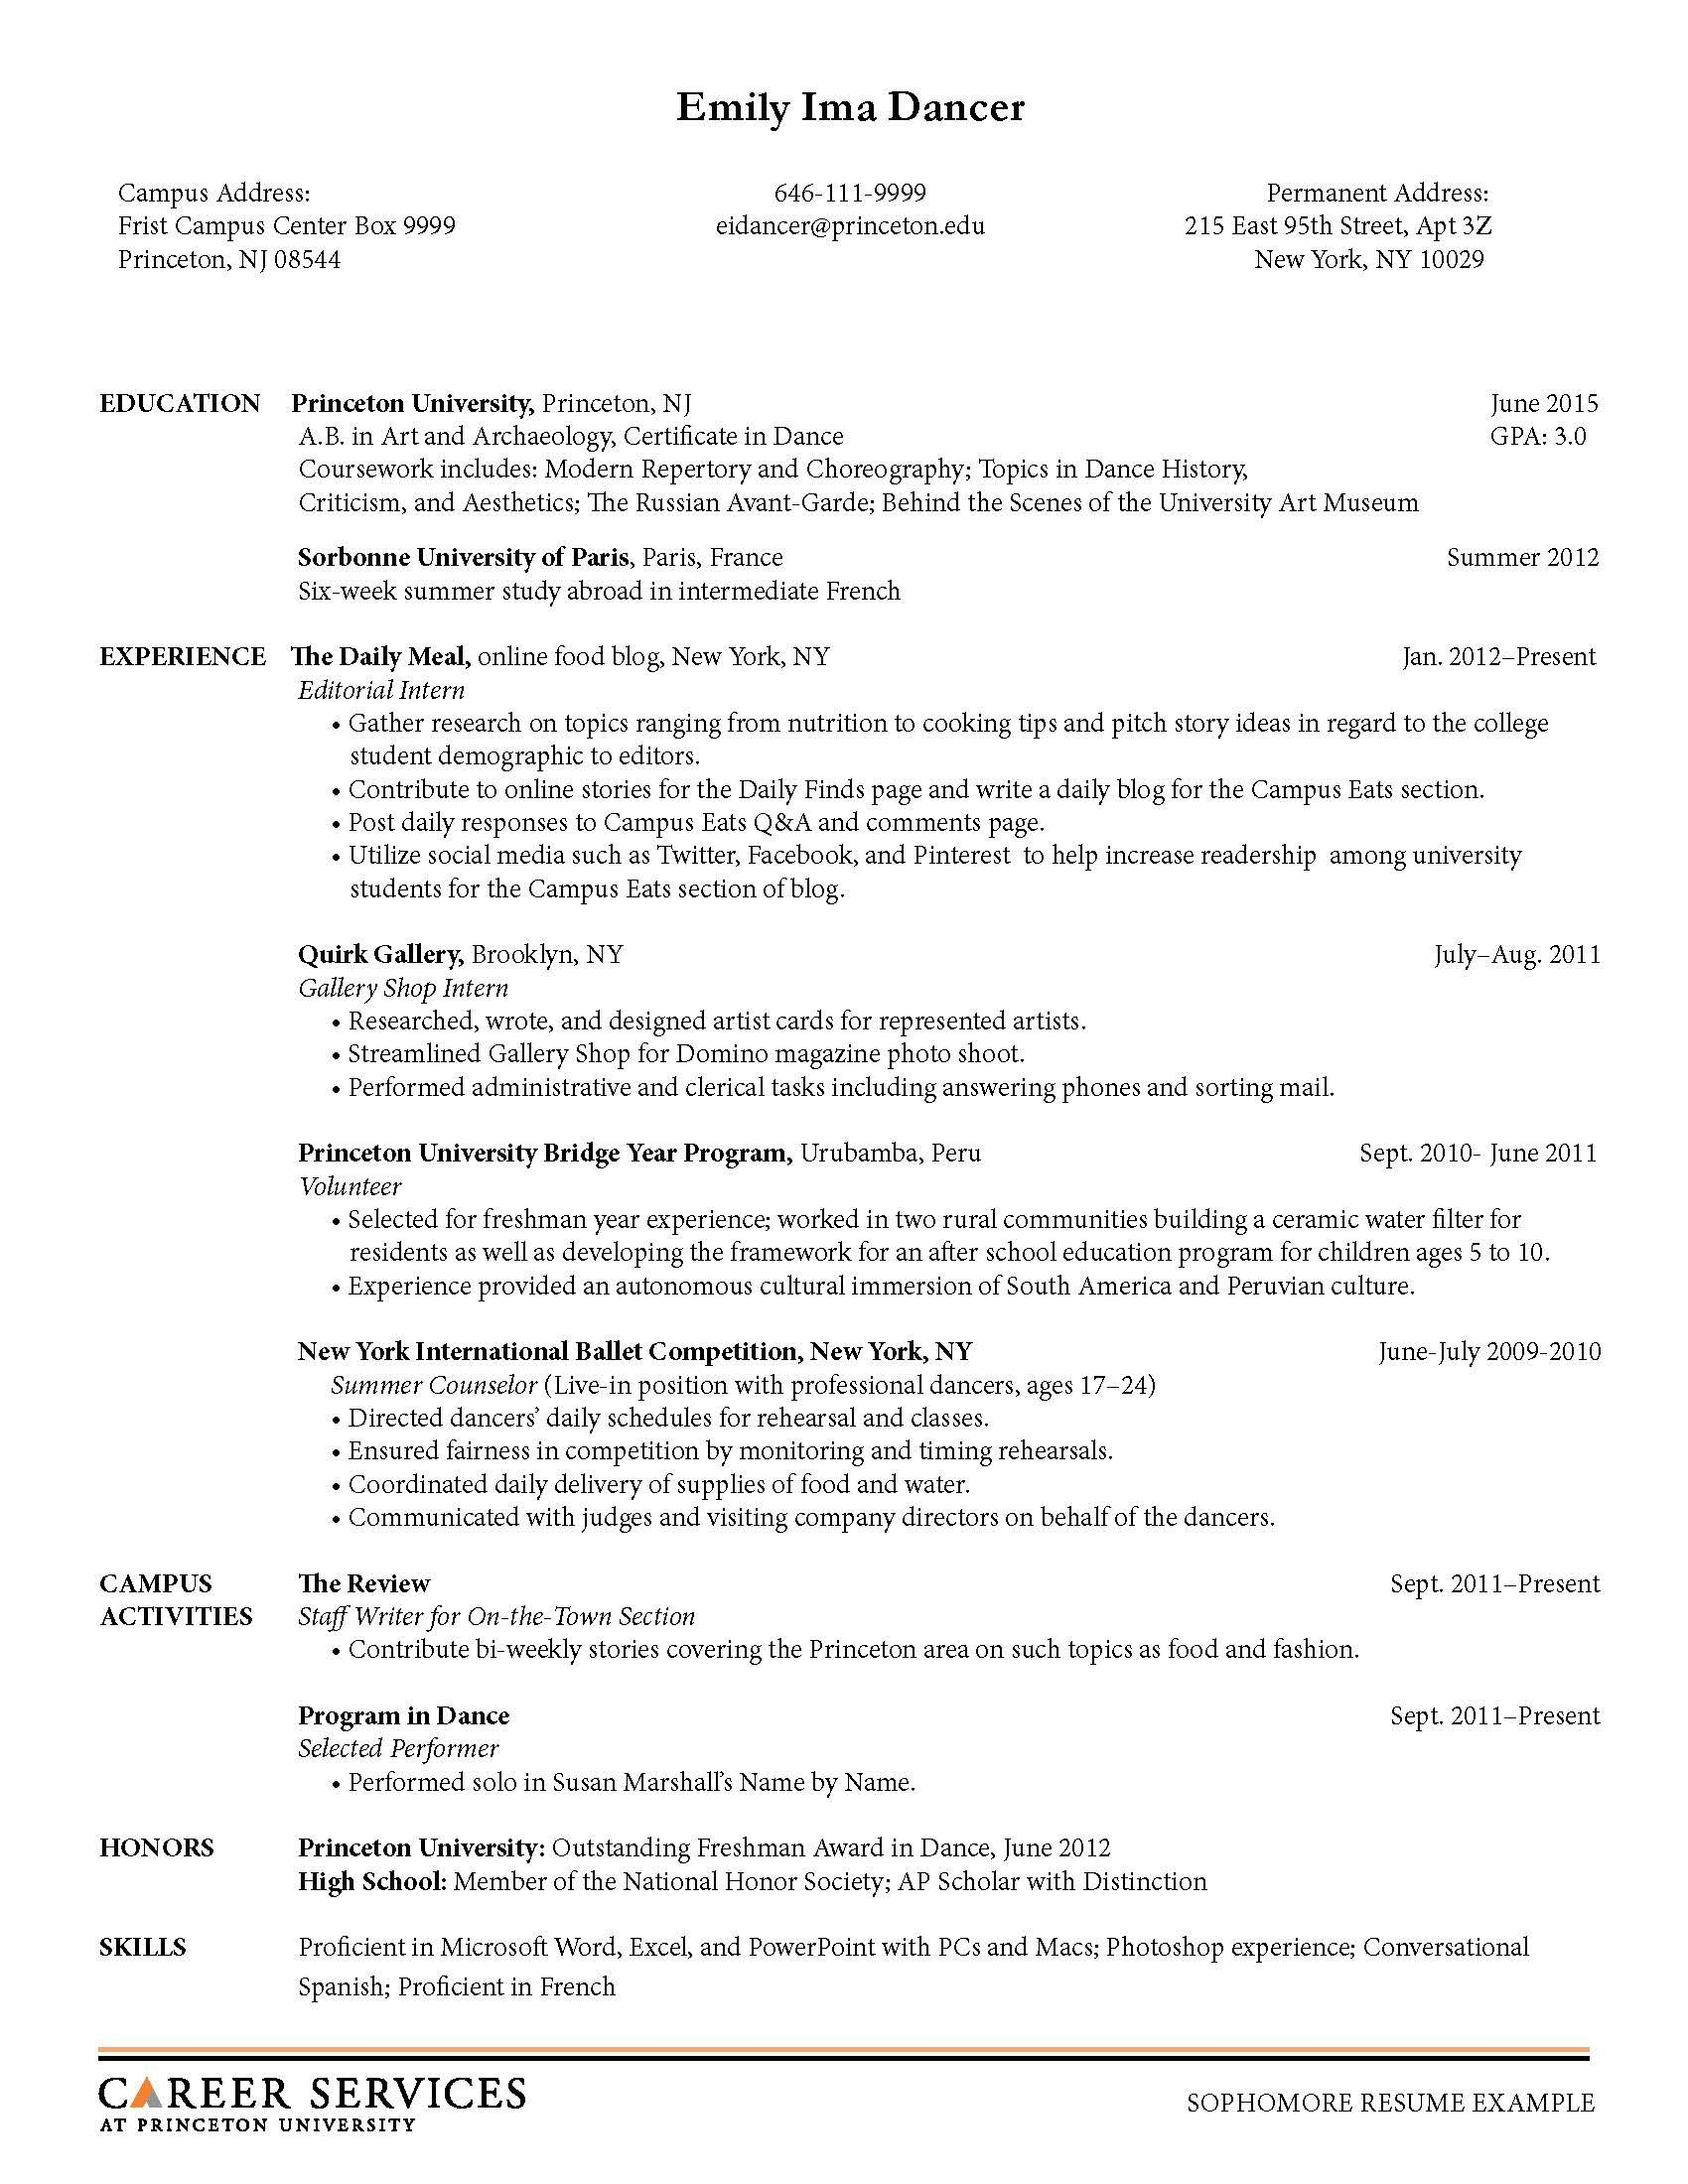 Picnictoimpeachus  Winning Sample Resume Resume And Career On Pinterest With Fascinating Examples Of Good Resumes Besides Sample Teacher Resume Furthermore Customer Service Skills Resume With Delectable Build My Resume Also Sample Resume Templates In Addition Latex Resume And Sample Of Resume As Well As Customer Service Resume Objective Additionally Student Resume Examples From Pinterestcom With Picnictoimpeachus  Fascinating Sample Resume Resume And Career On Pinterest With Delectable Examples Of Good Resumes Besides Sample Teacher Resume Furthermore Customer Service Skills Resume And Winning Build My Resume Also Sample Resume Templates In Addition Latex Resume From Pinterestcom